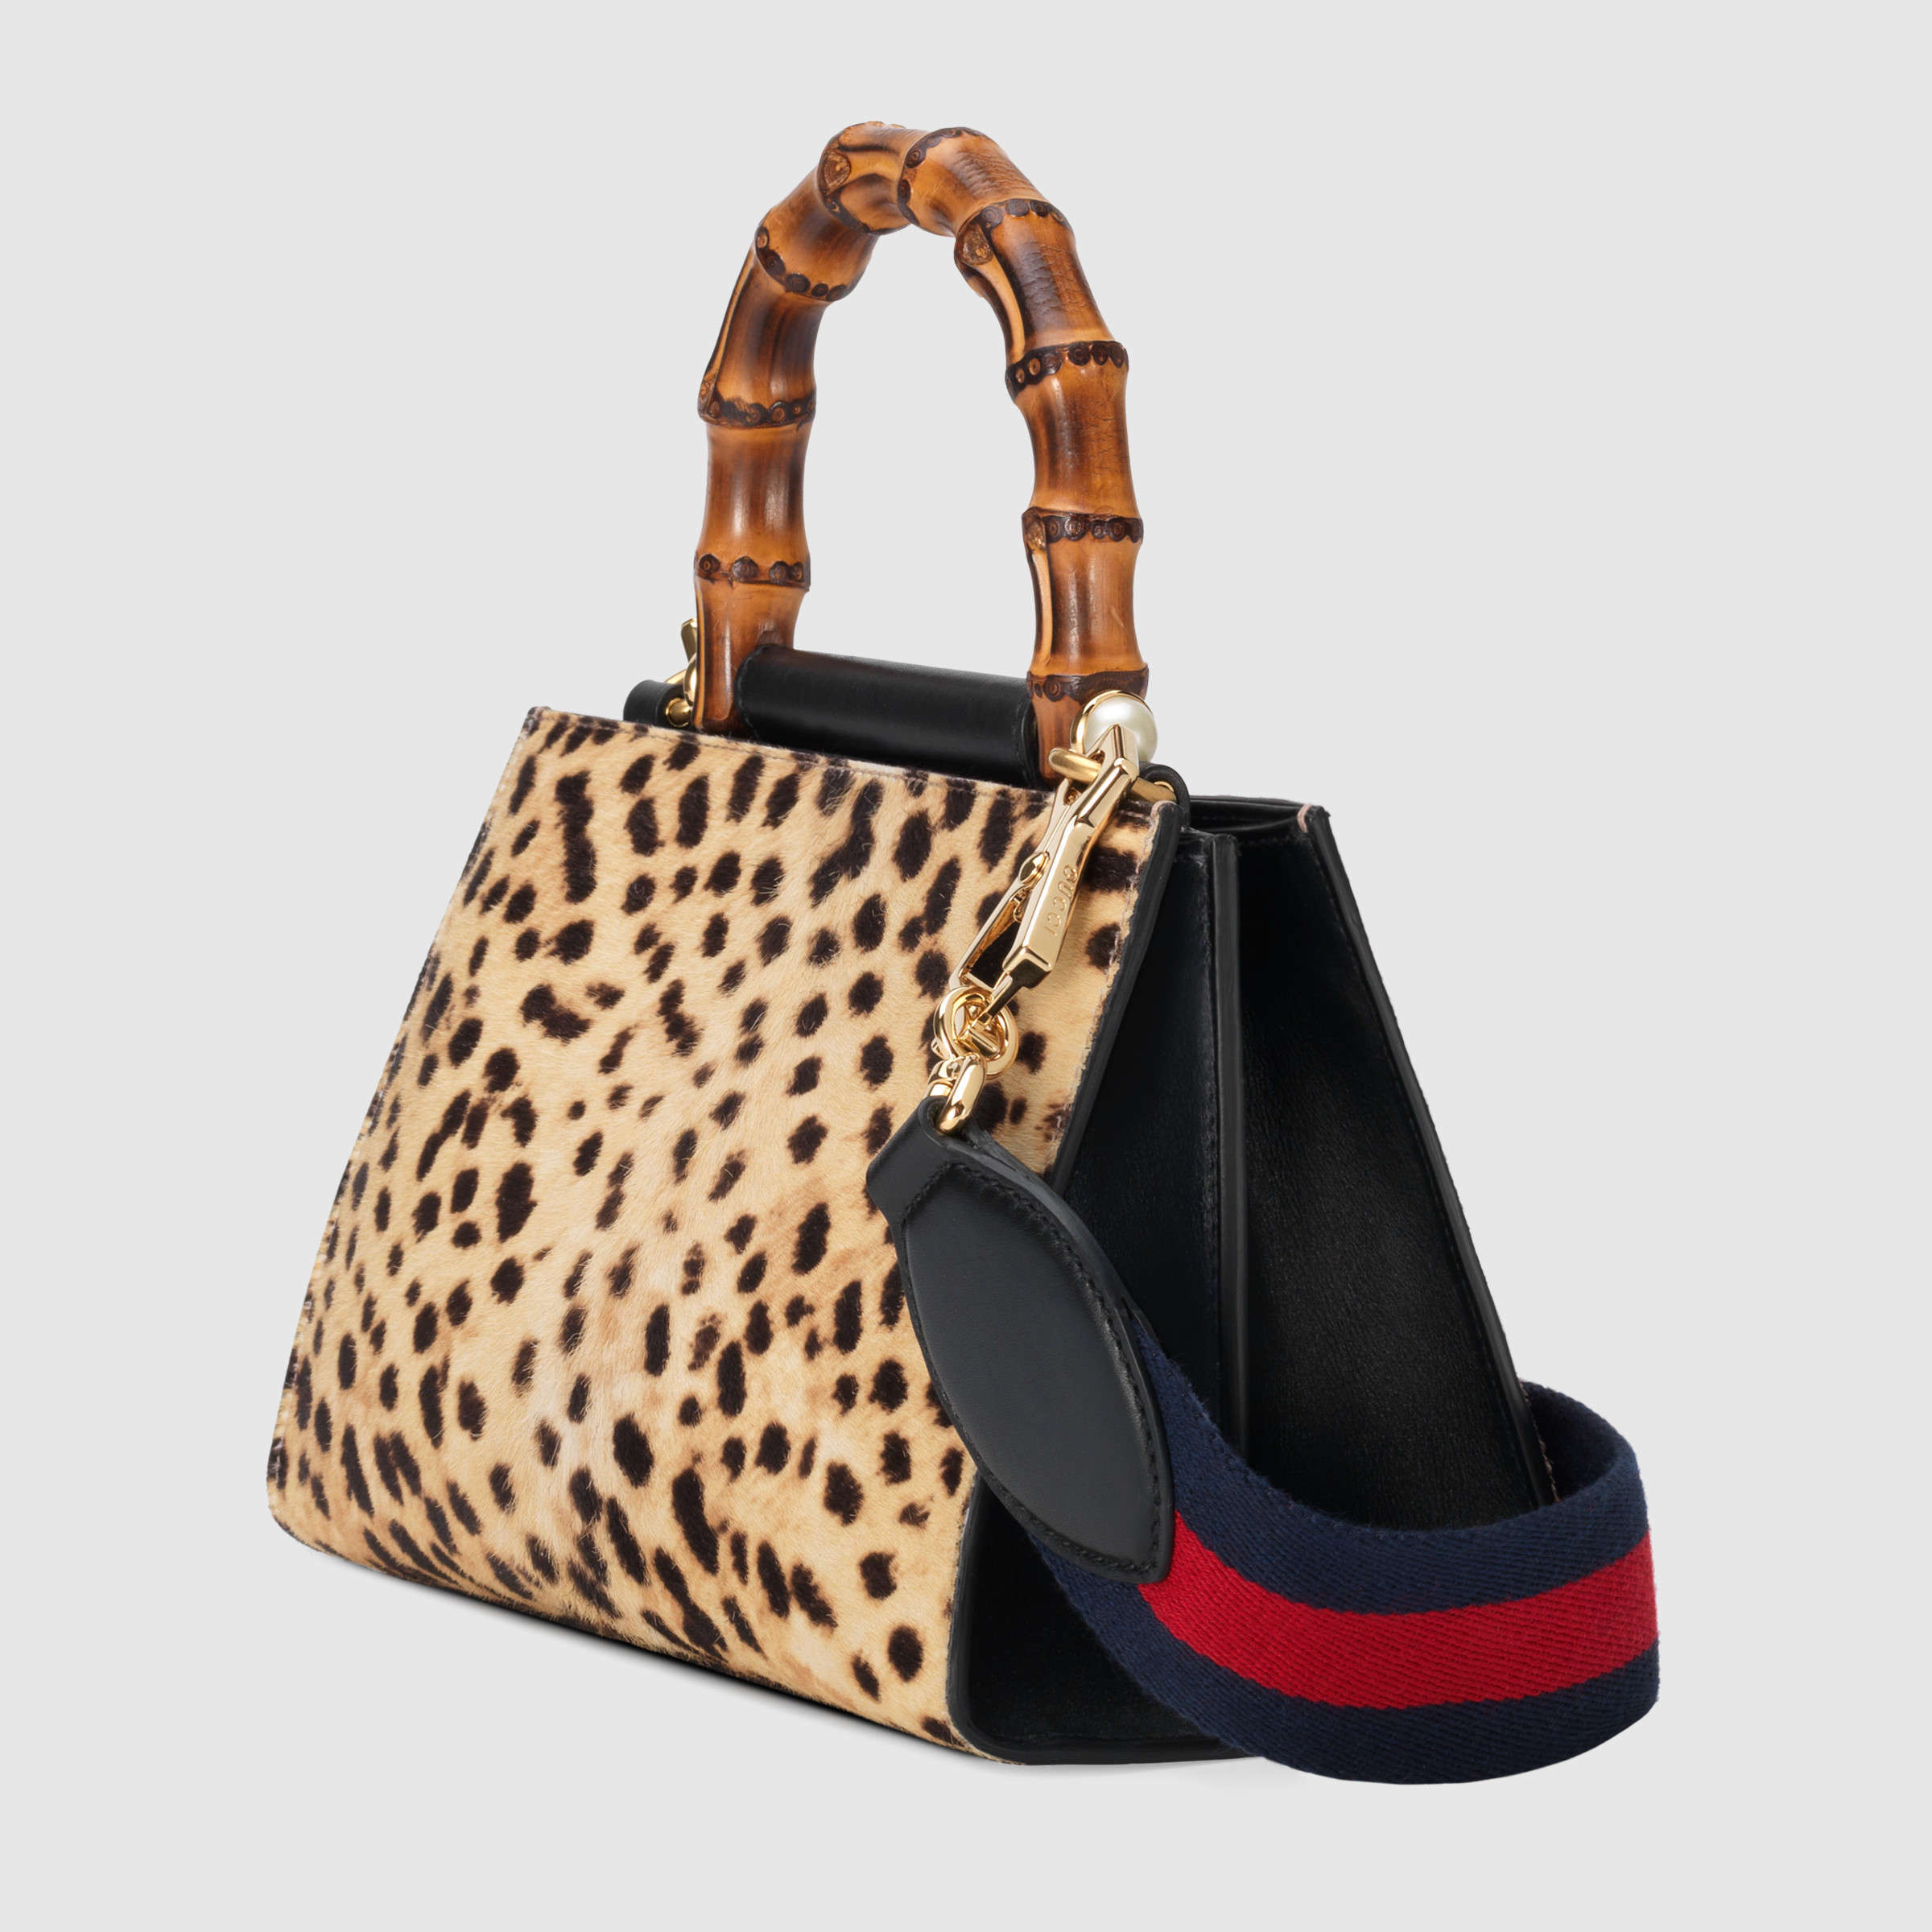 【グッチ】Gucci Nymphaea Leopard Print Mini Bag ハンドバッグ